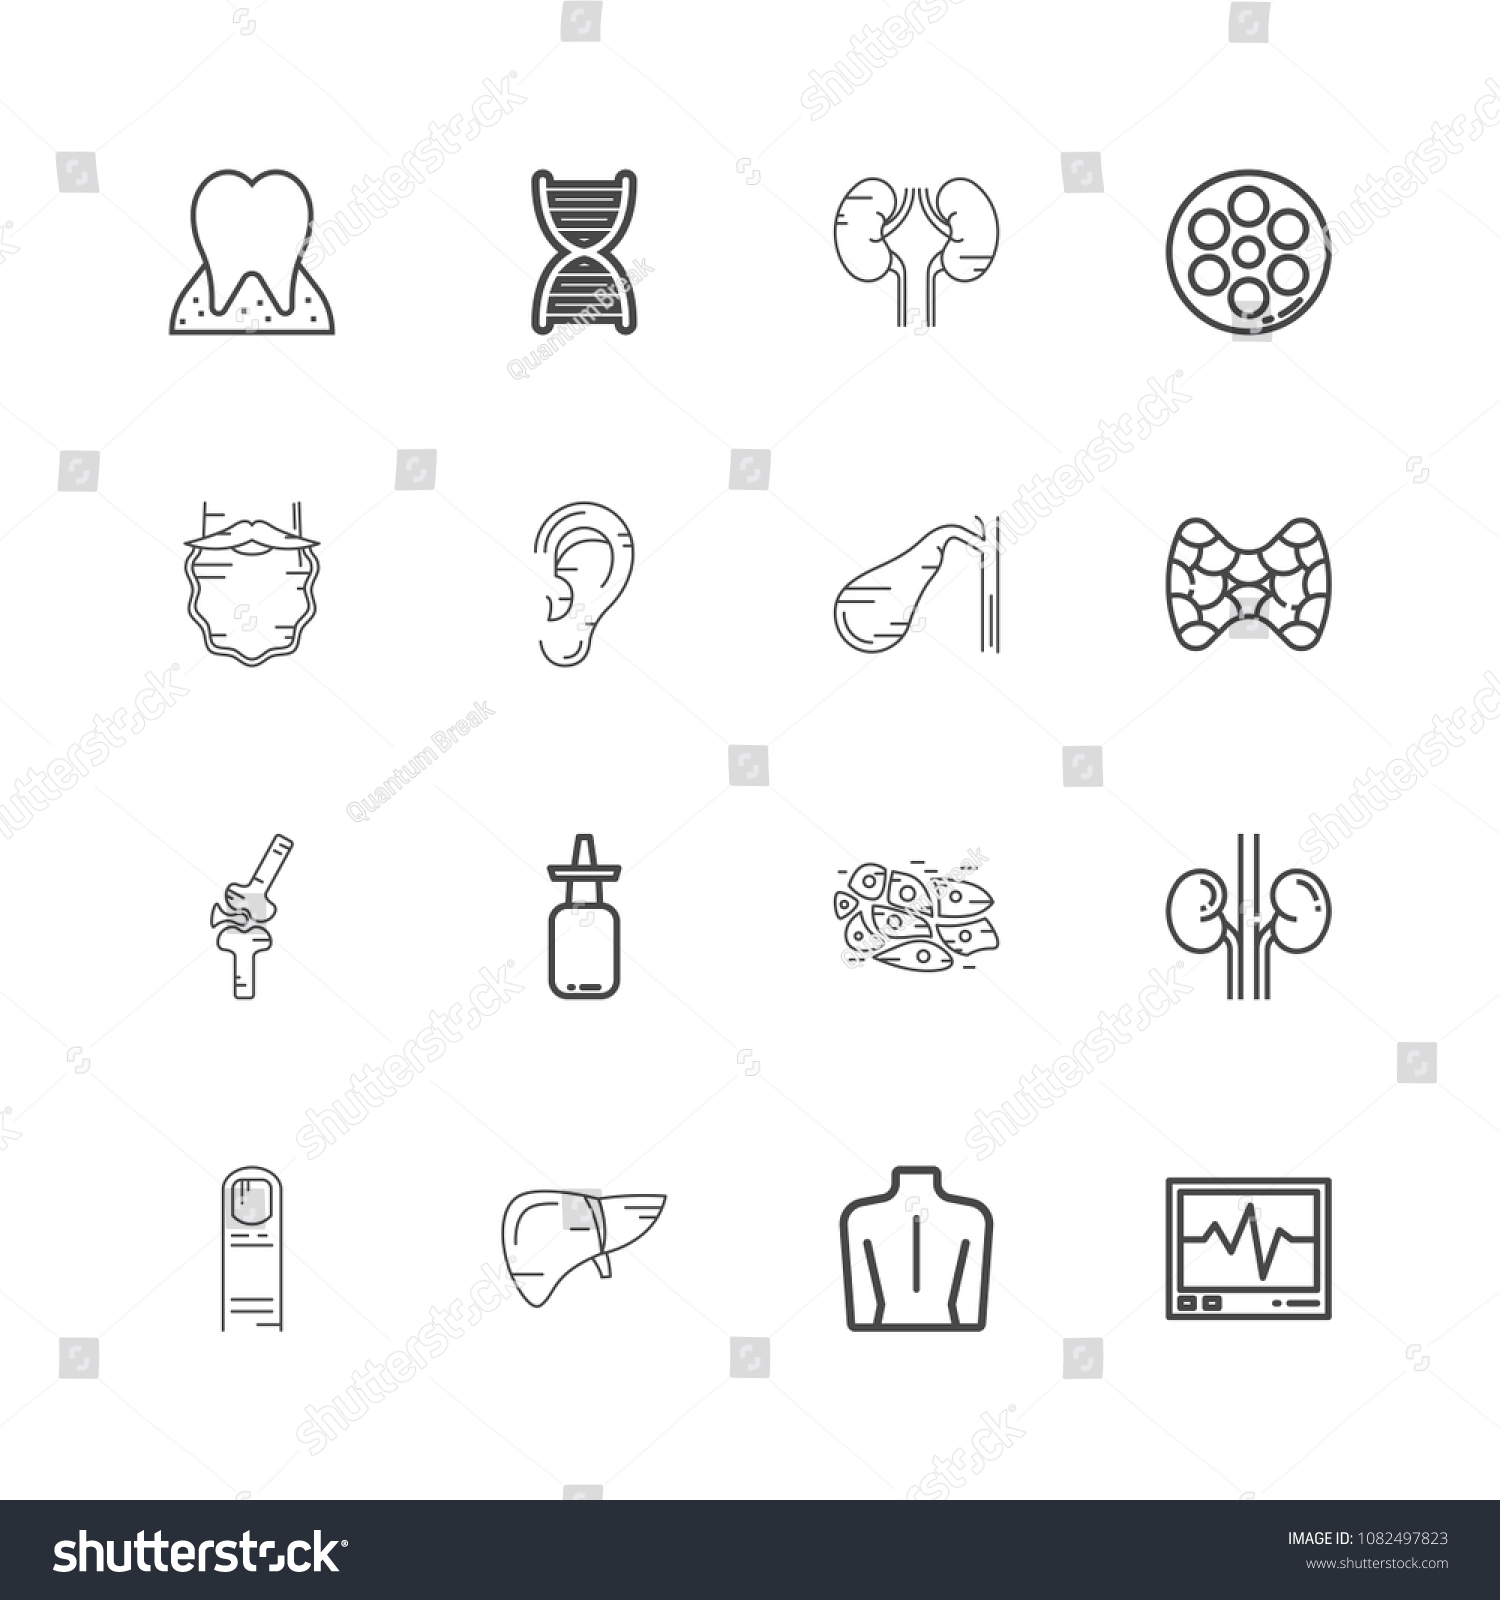 Human Body Parts Linear Icons Set Stock Vector 1082497823 - Shutterstock